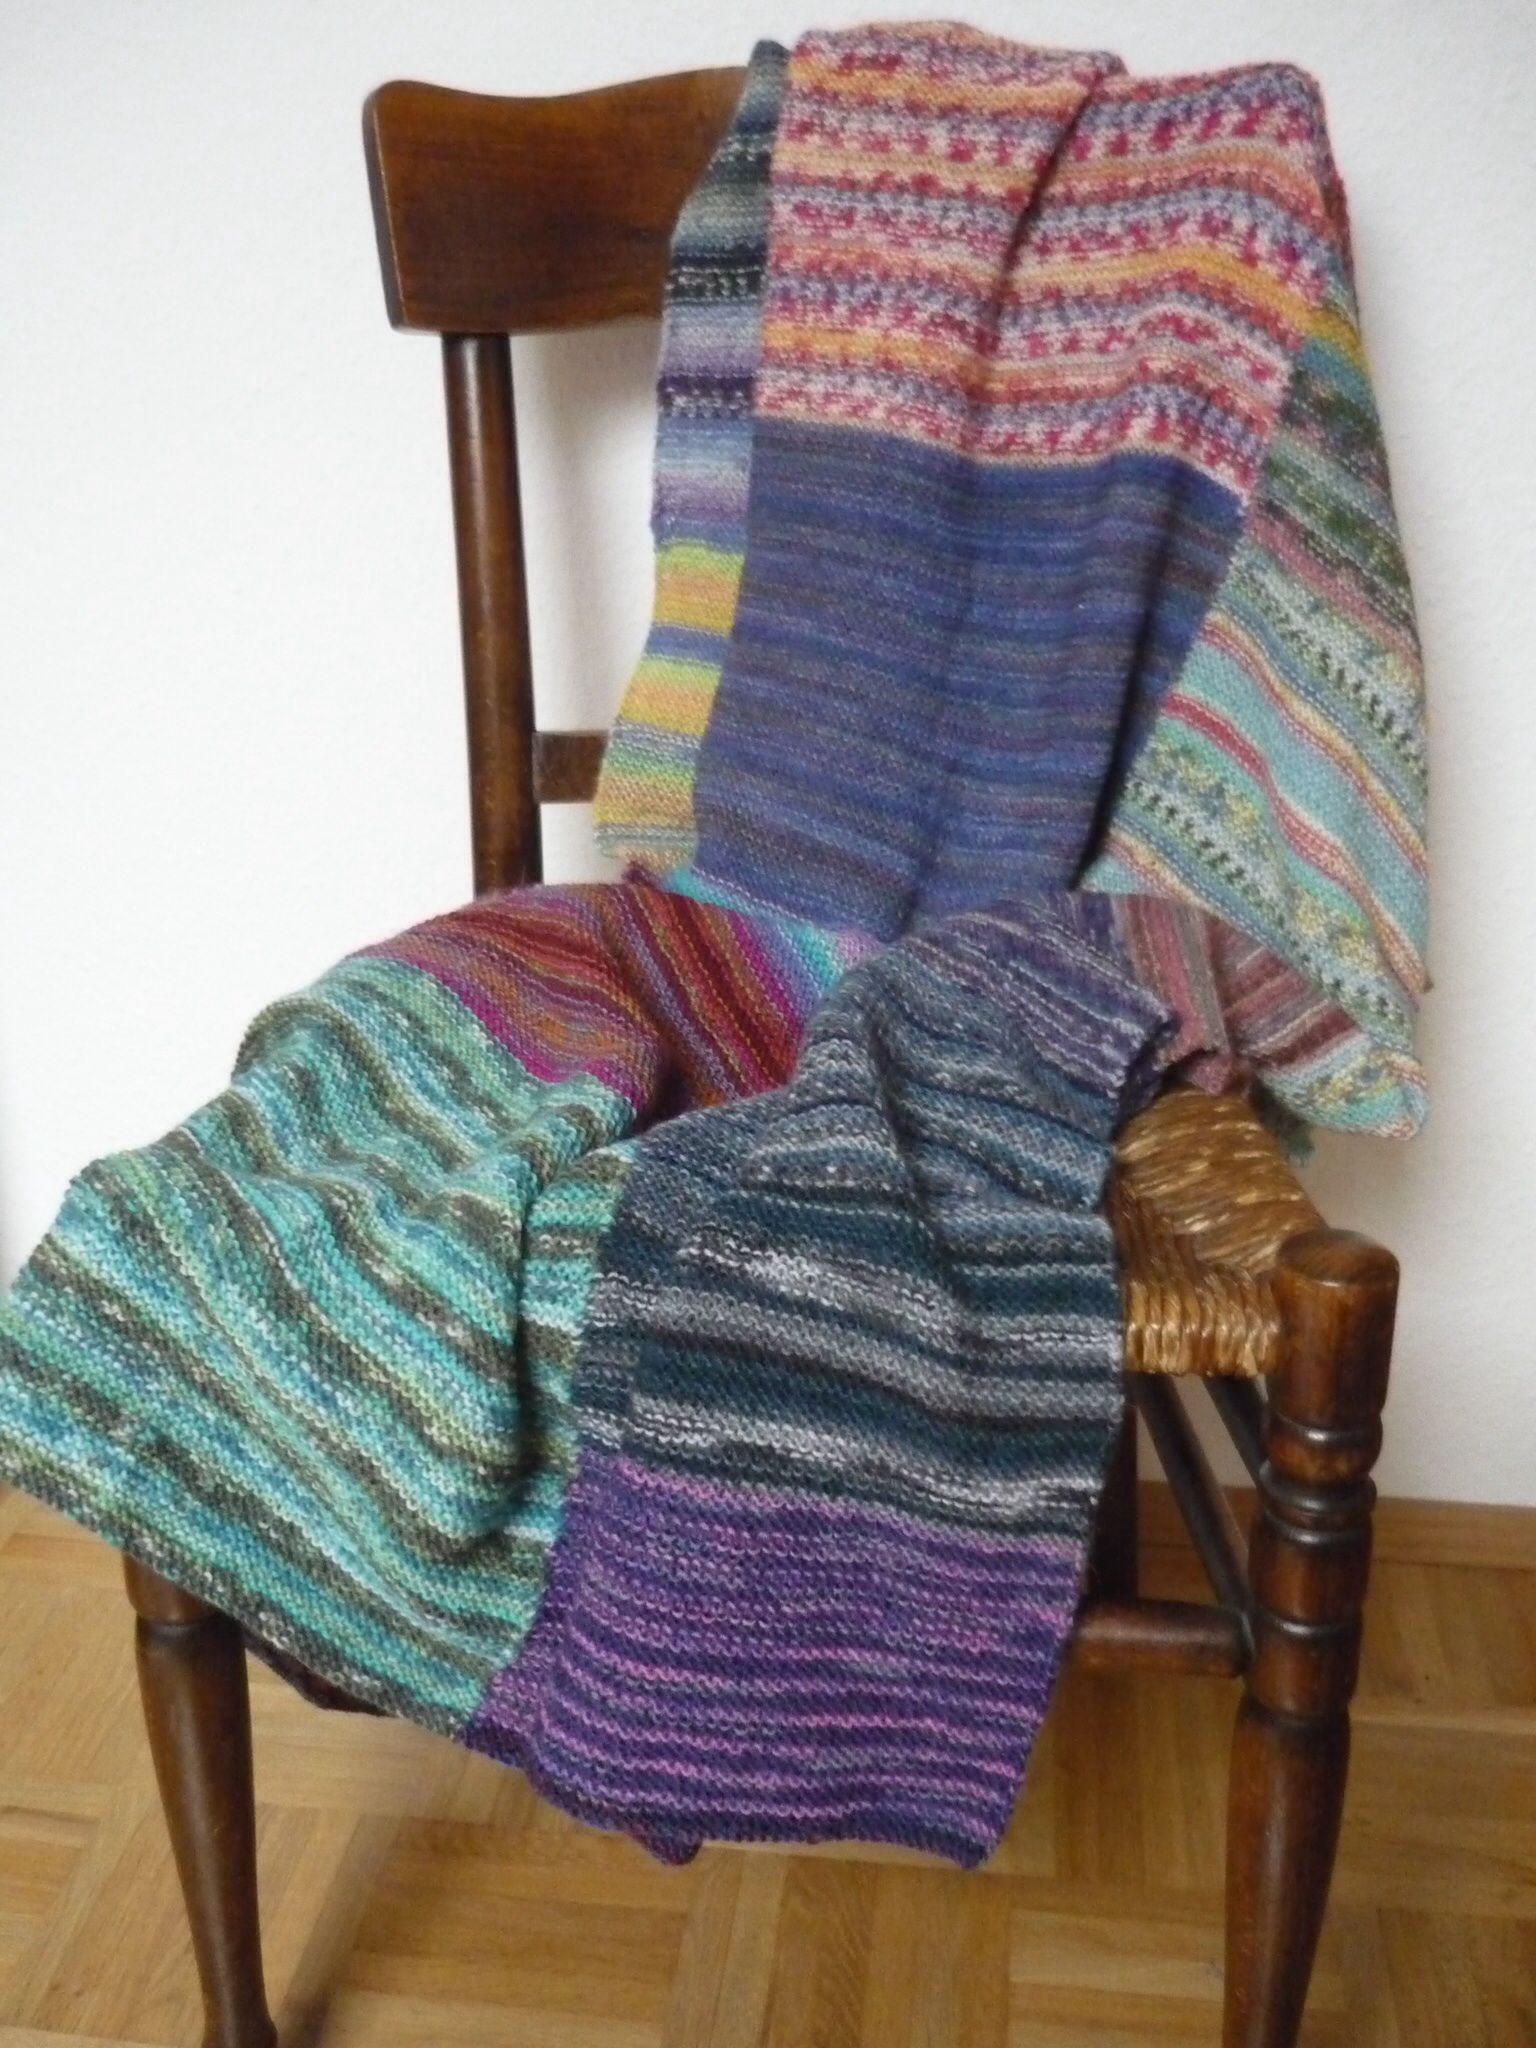 Wolldecke Stricken Decke Stricken Patchwork Aus Sockenwolle Reste Stricken